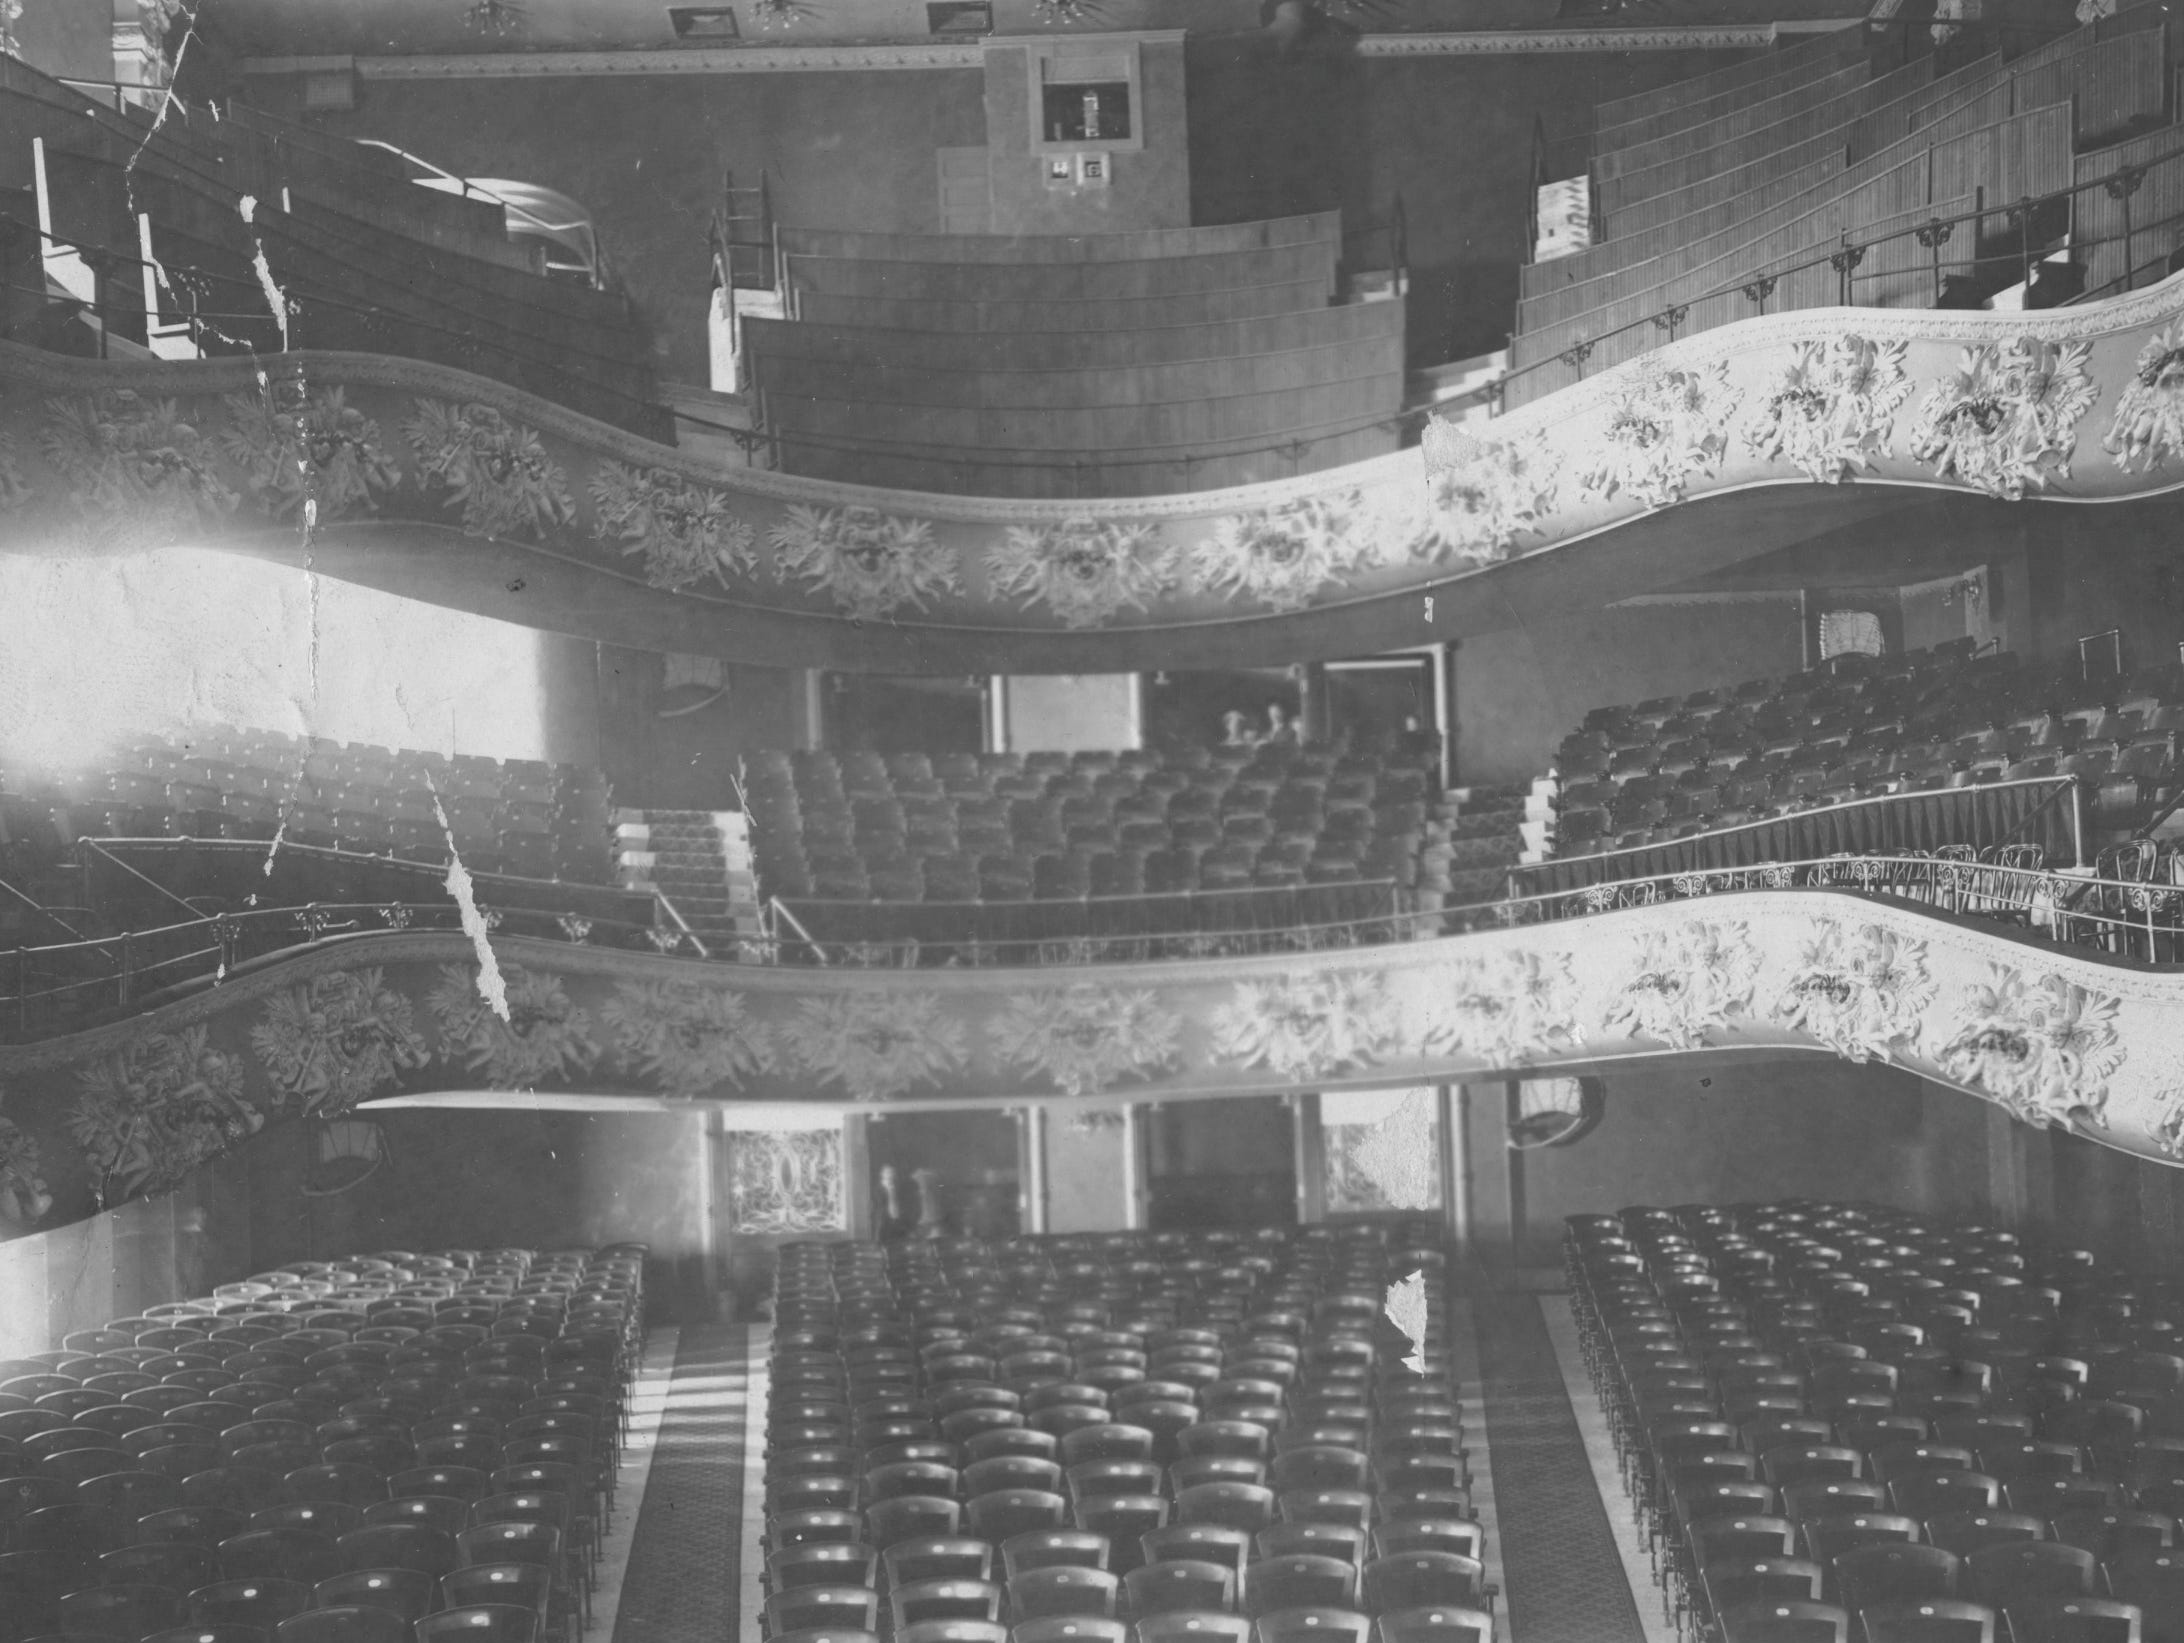 view from the stage of the Majestic Theatre on South Illinois Street in 1907.